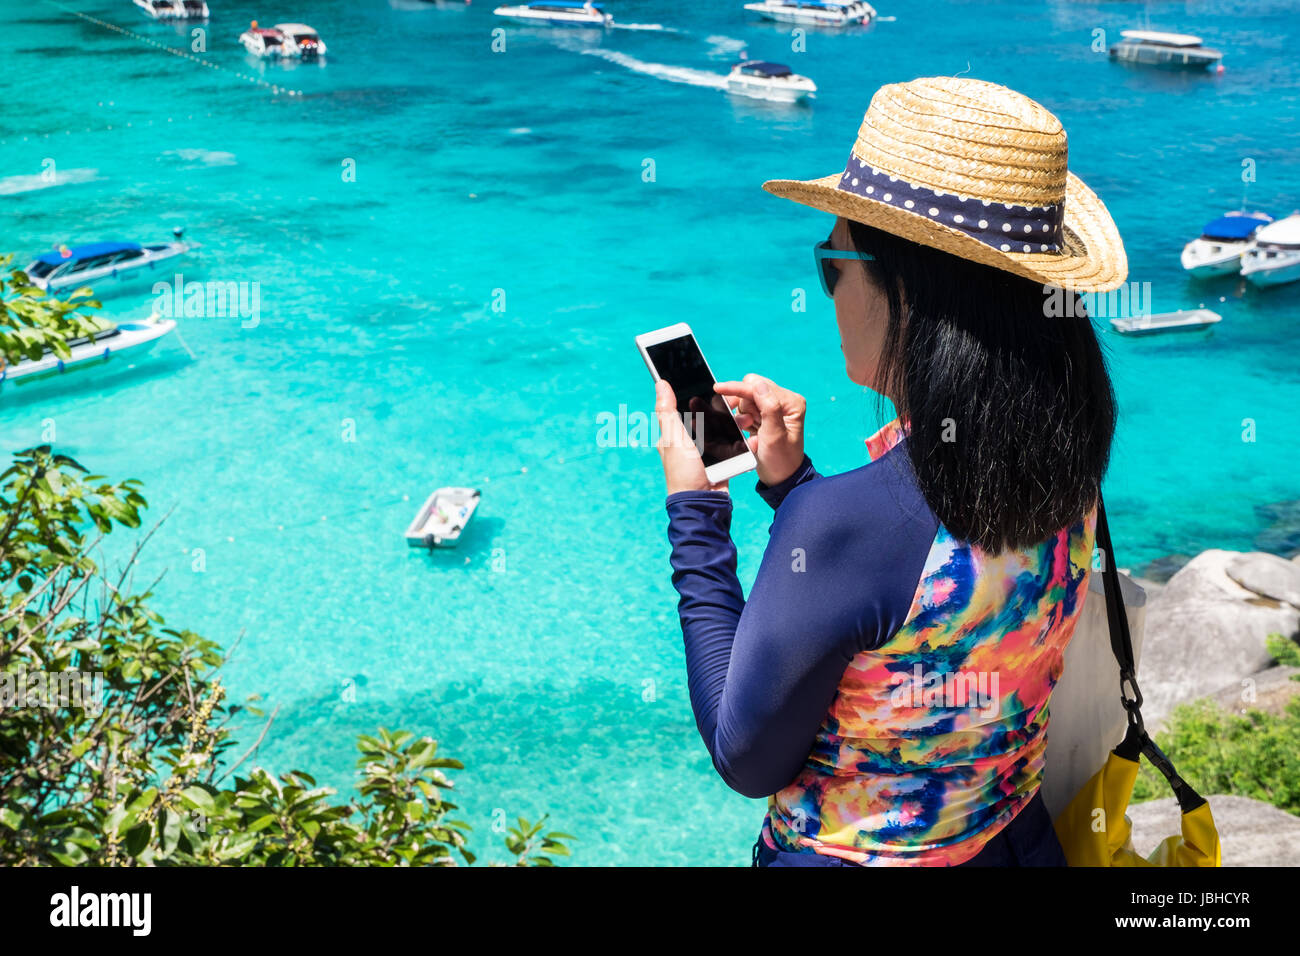 Traveller woman with colorful swimming suit use mobile take photo of  view  at top of mountain and speed boat in - Stock Image